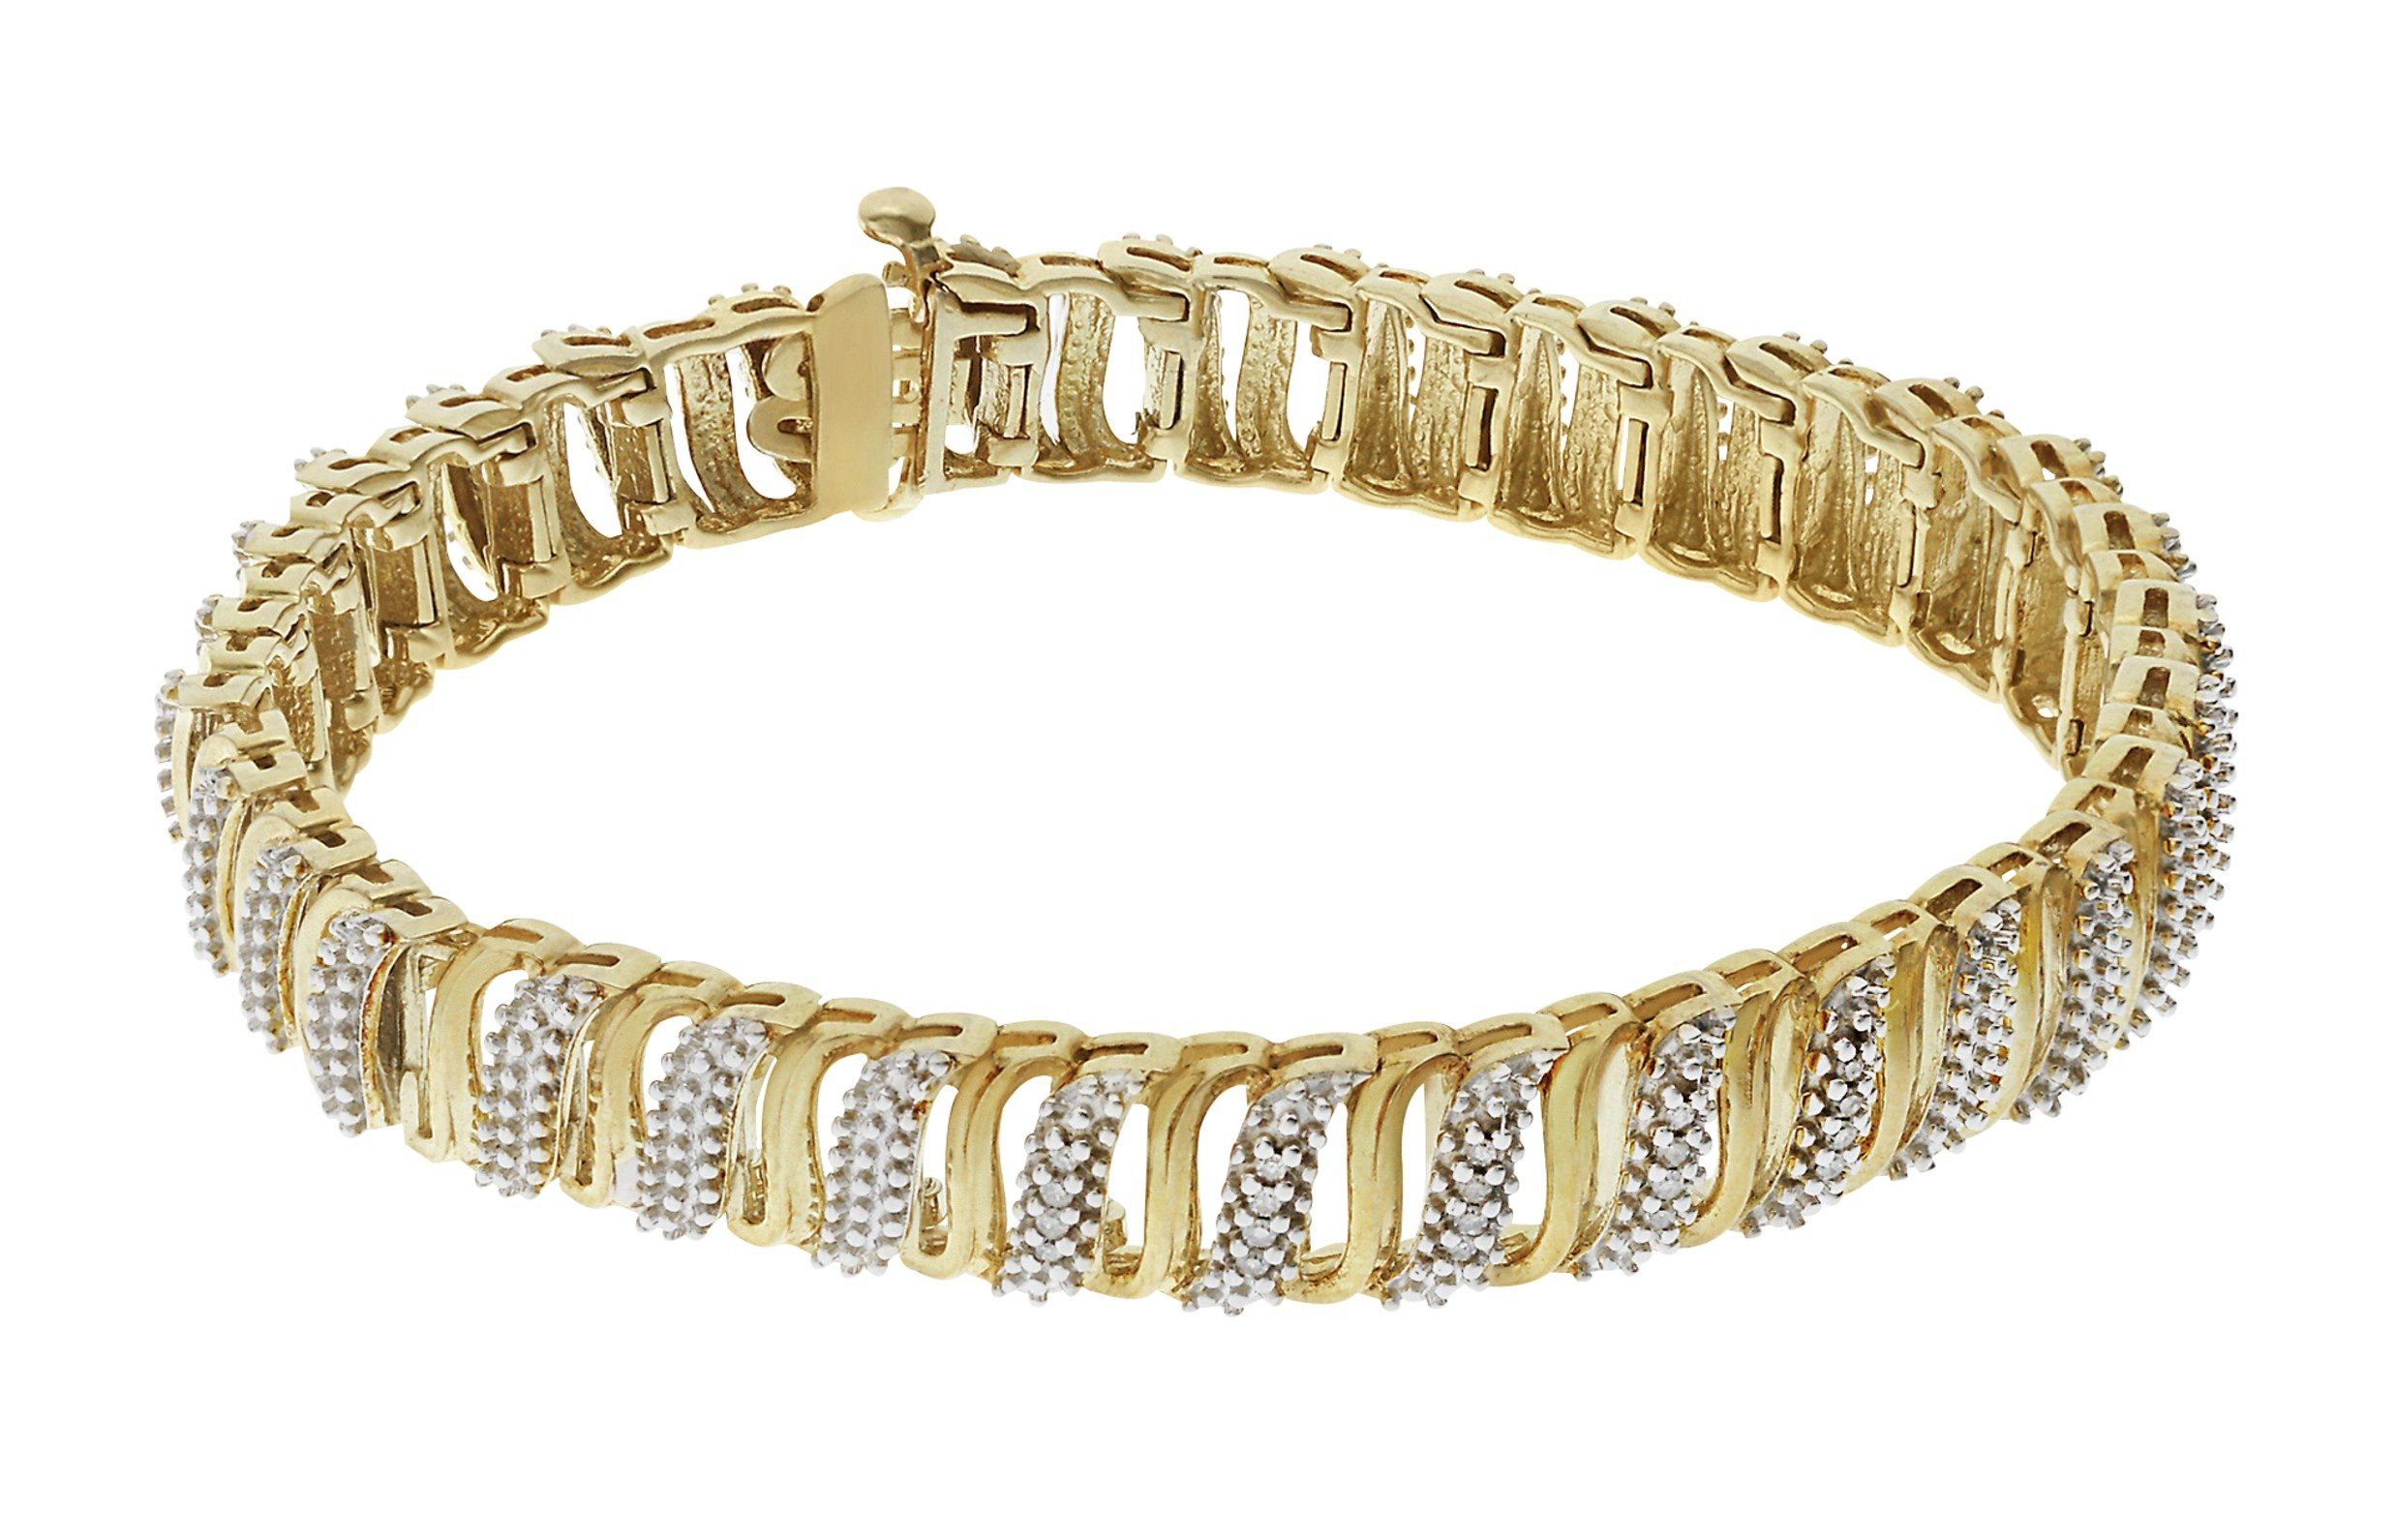 18 Carat Gold - Plated - Silver 0.10 Carat Diamond Bracelet.